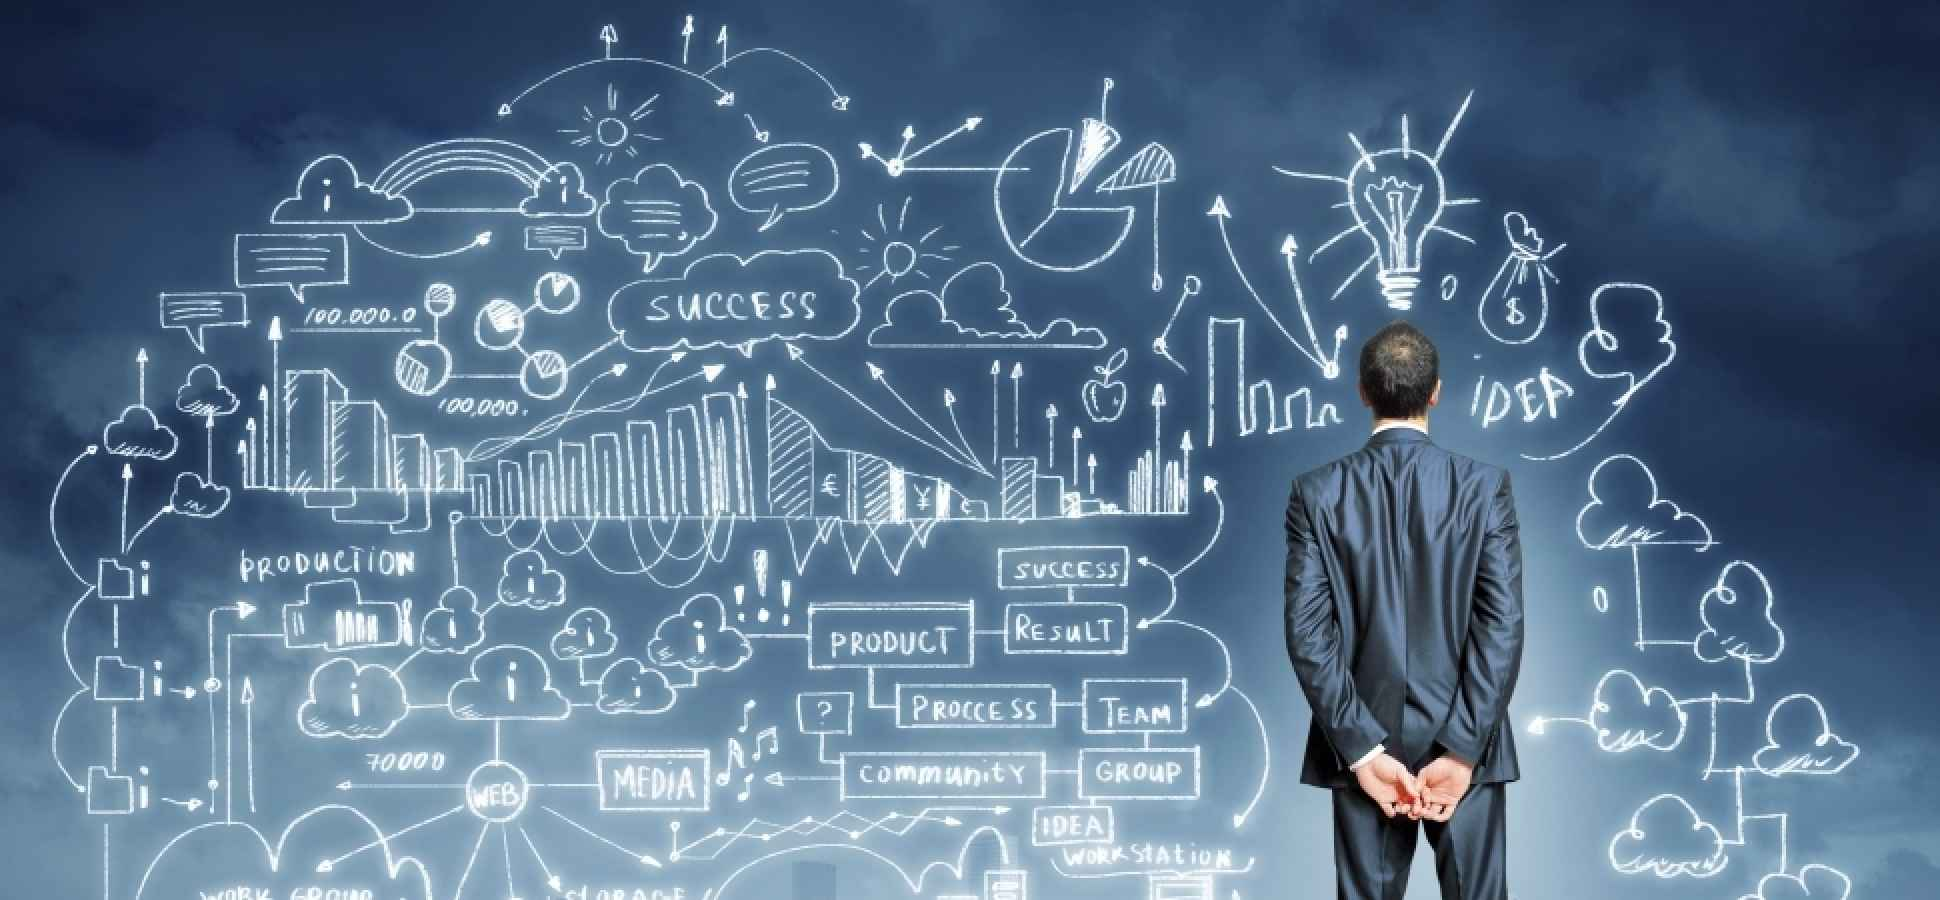 7 Questions to Help You Determine the Best Business Strategy to Scale Your Business